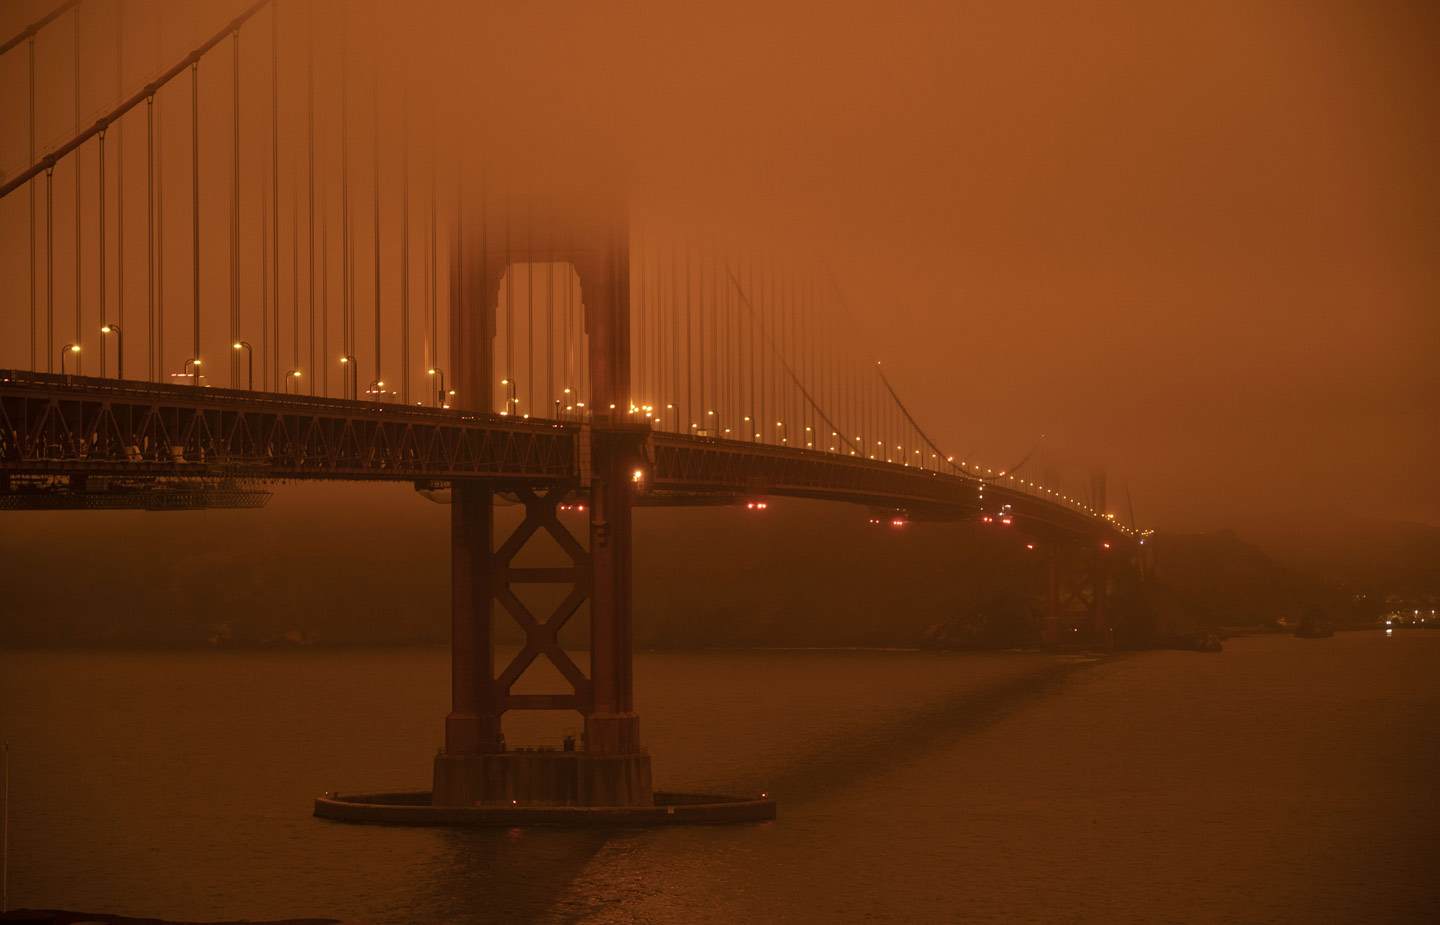 Image of Golden Gate Bridge shrouded in smoke